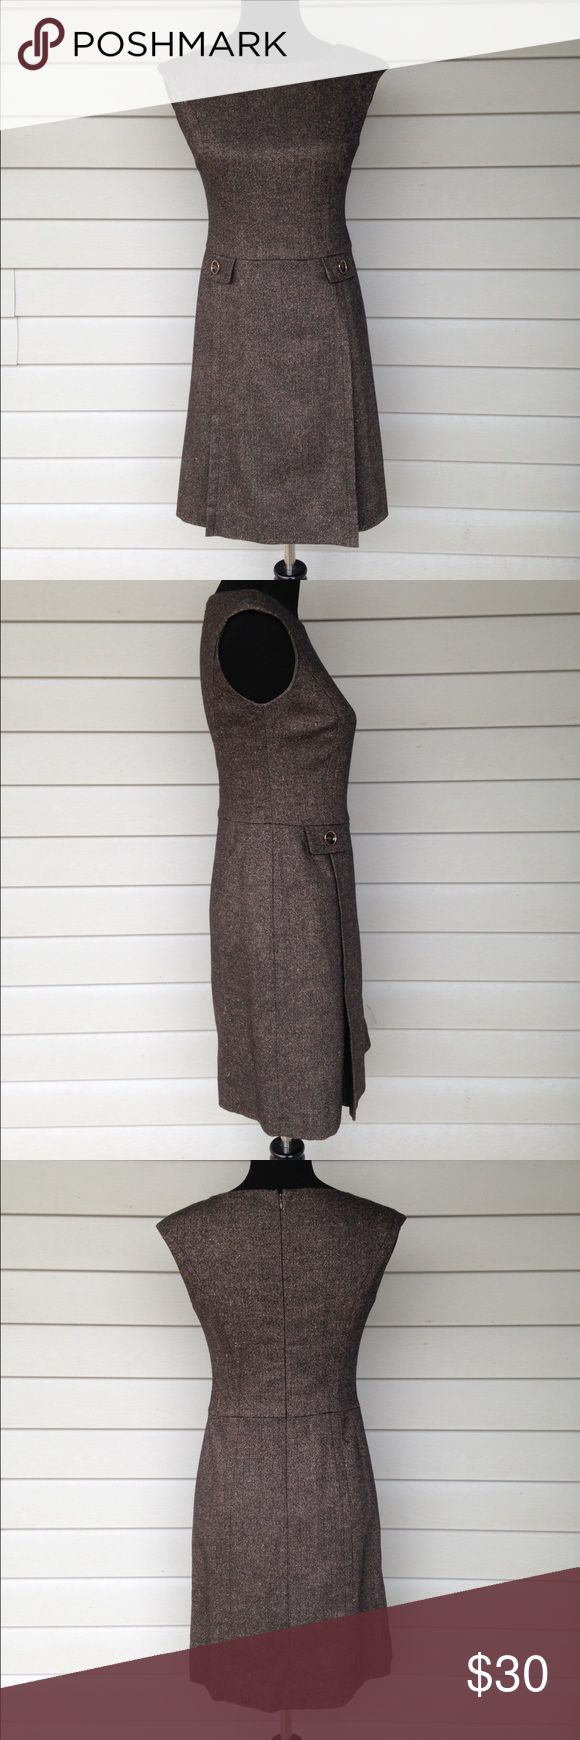 Ann Taylor petite dress Ann Taylor petite brown wool blend sleeveless dress. Has pleating in front and a back zip. Size 2 petite. Ann Taylor Dresses